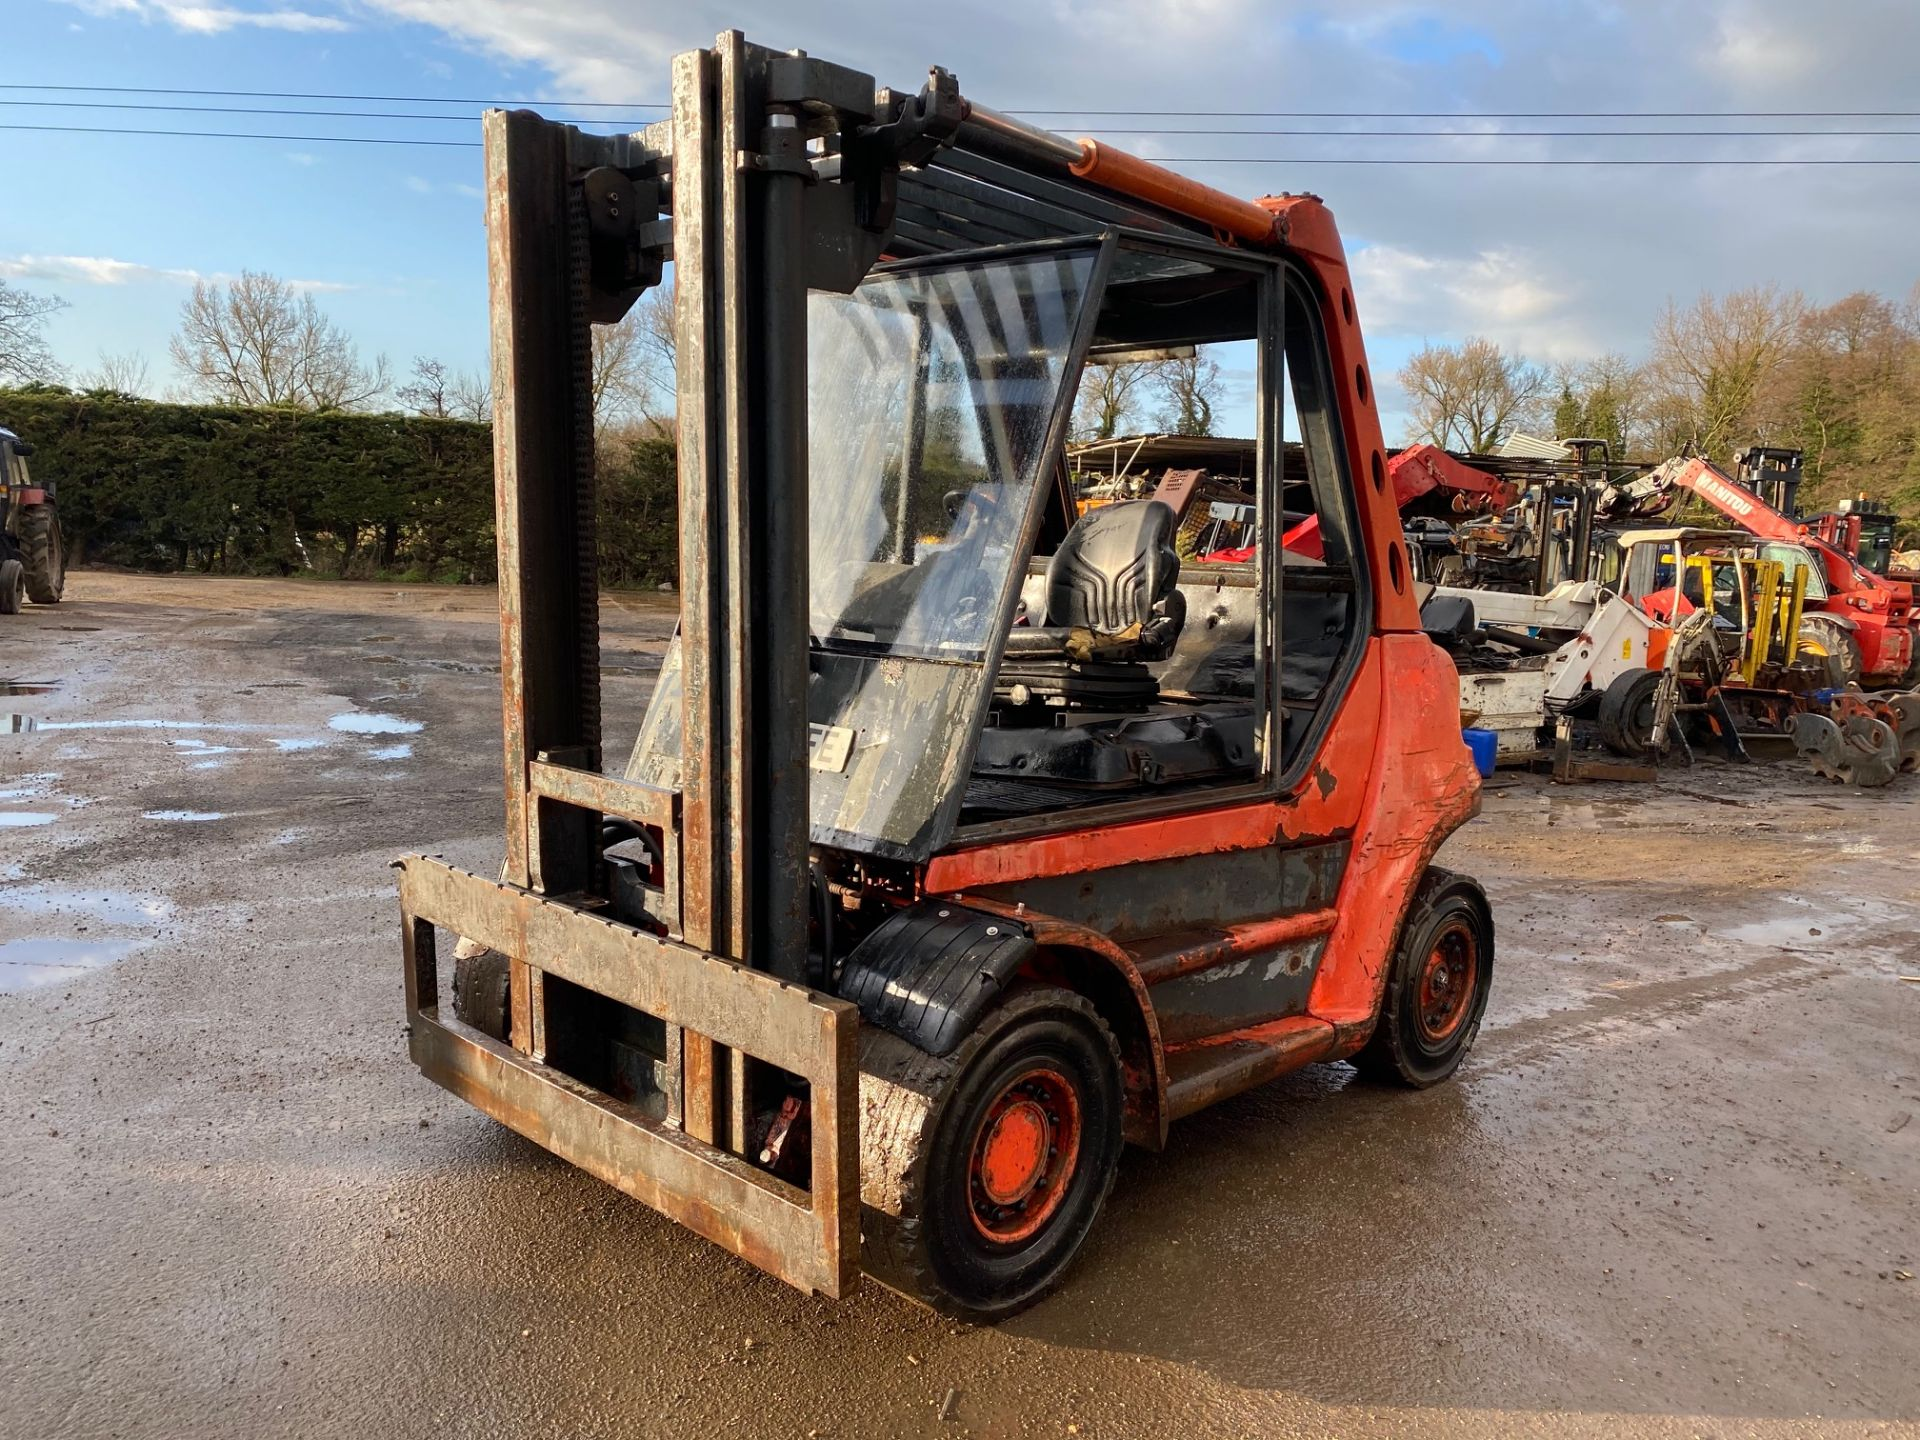 1998 Linde H60D forklift, 8200 hours, Deutz 6 cylinder engine Forks will be included with the truck - Image 3 of 5